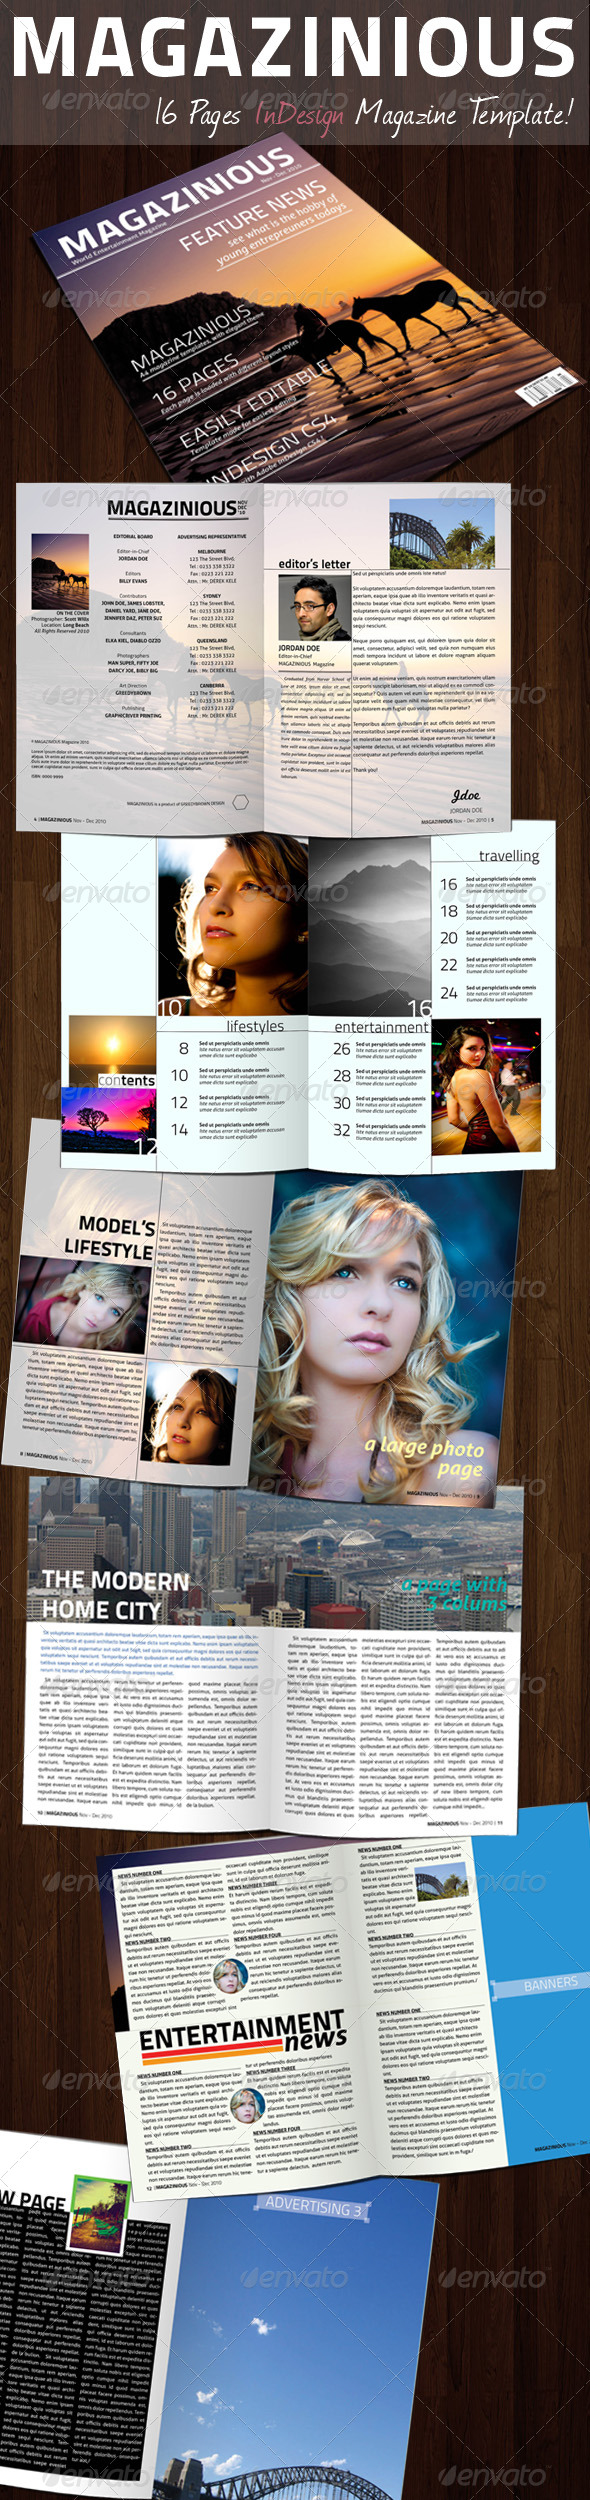 MAGAZINIOUS - InDesign Magazine Template